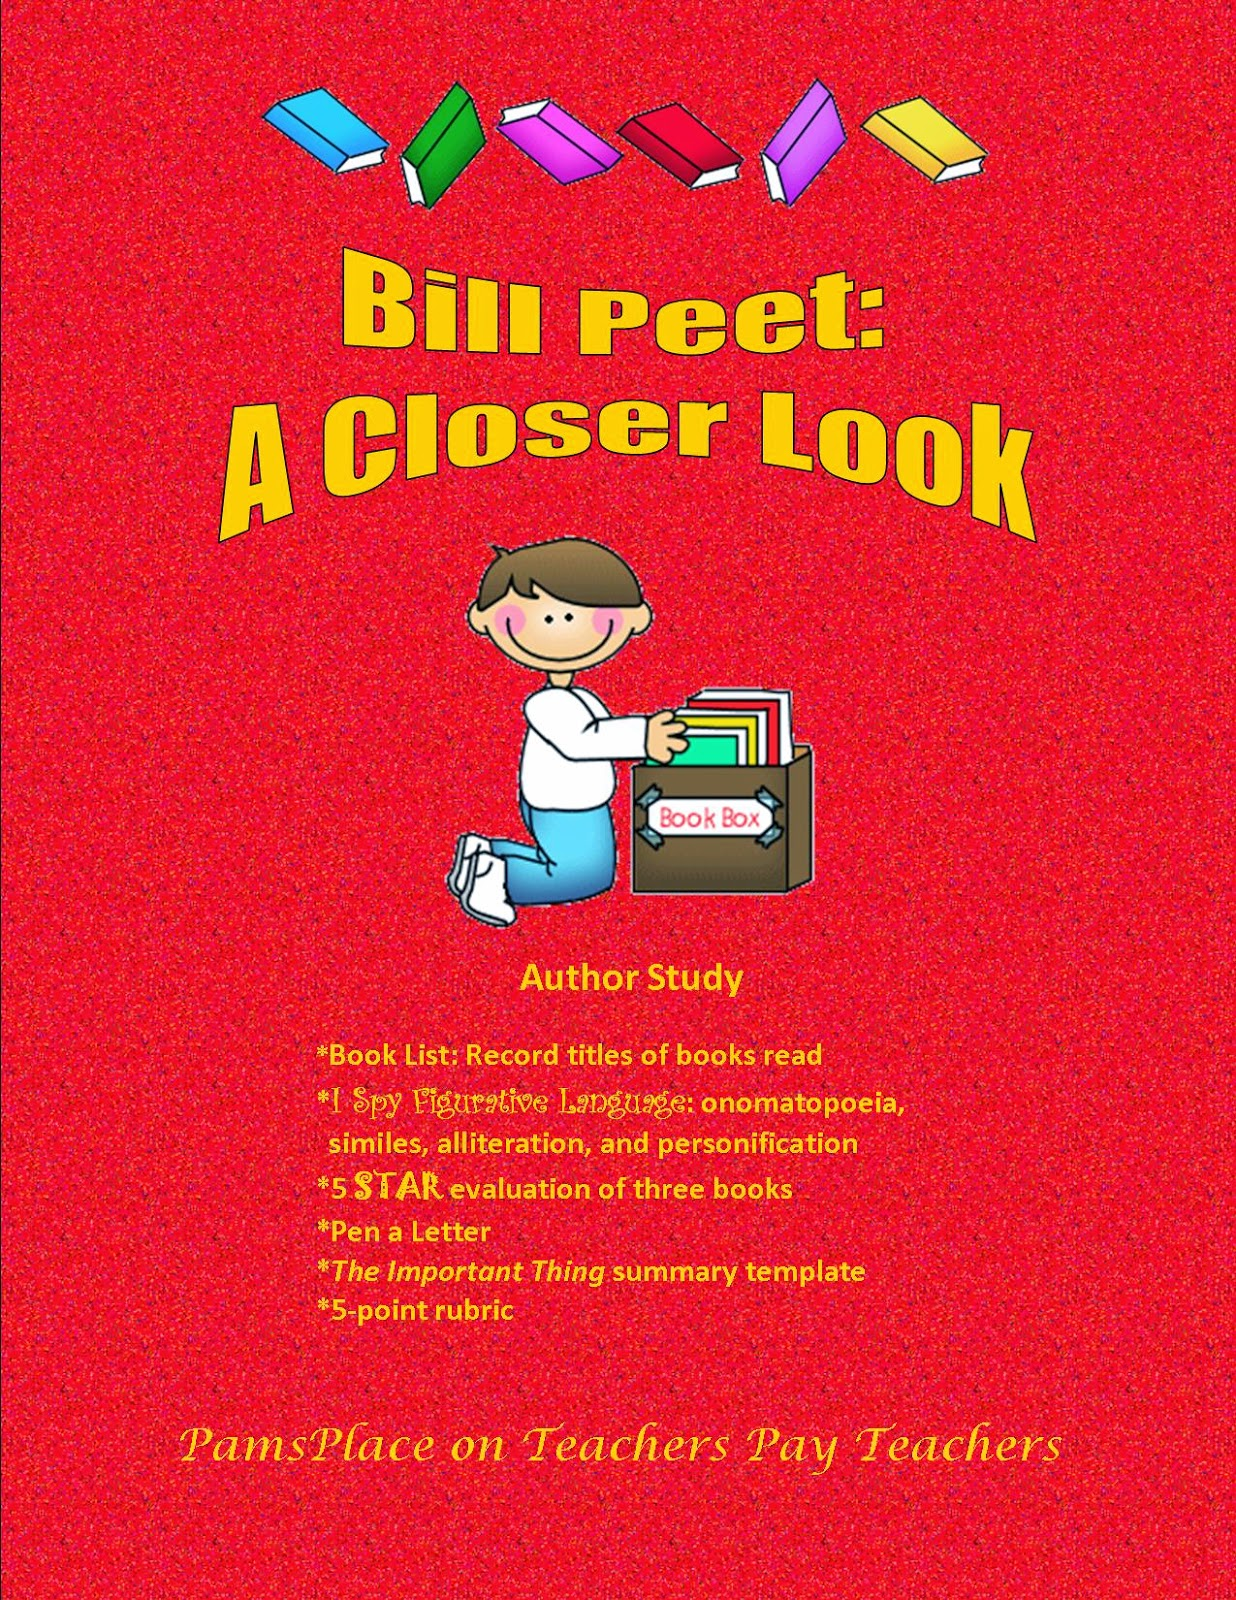 http://www.teacherspayteachers.com/Product/Author-Study-with-a-TwistBill-Peet-A-Closer-Look-245621